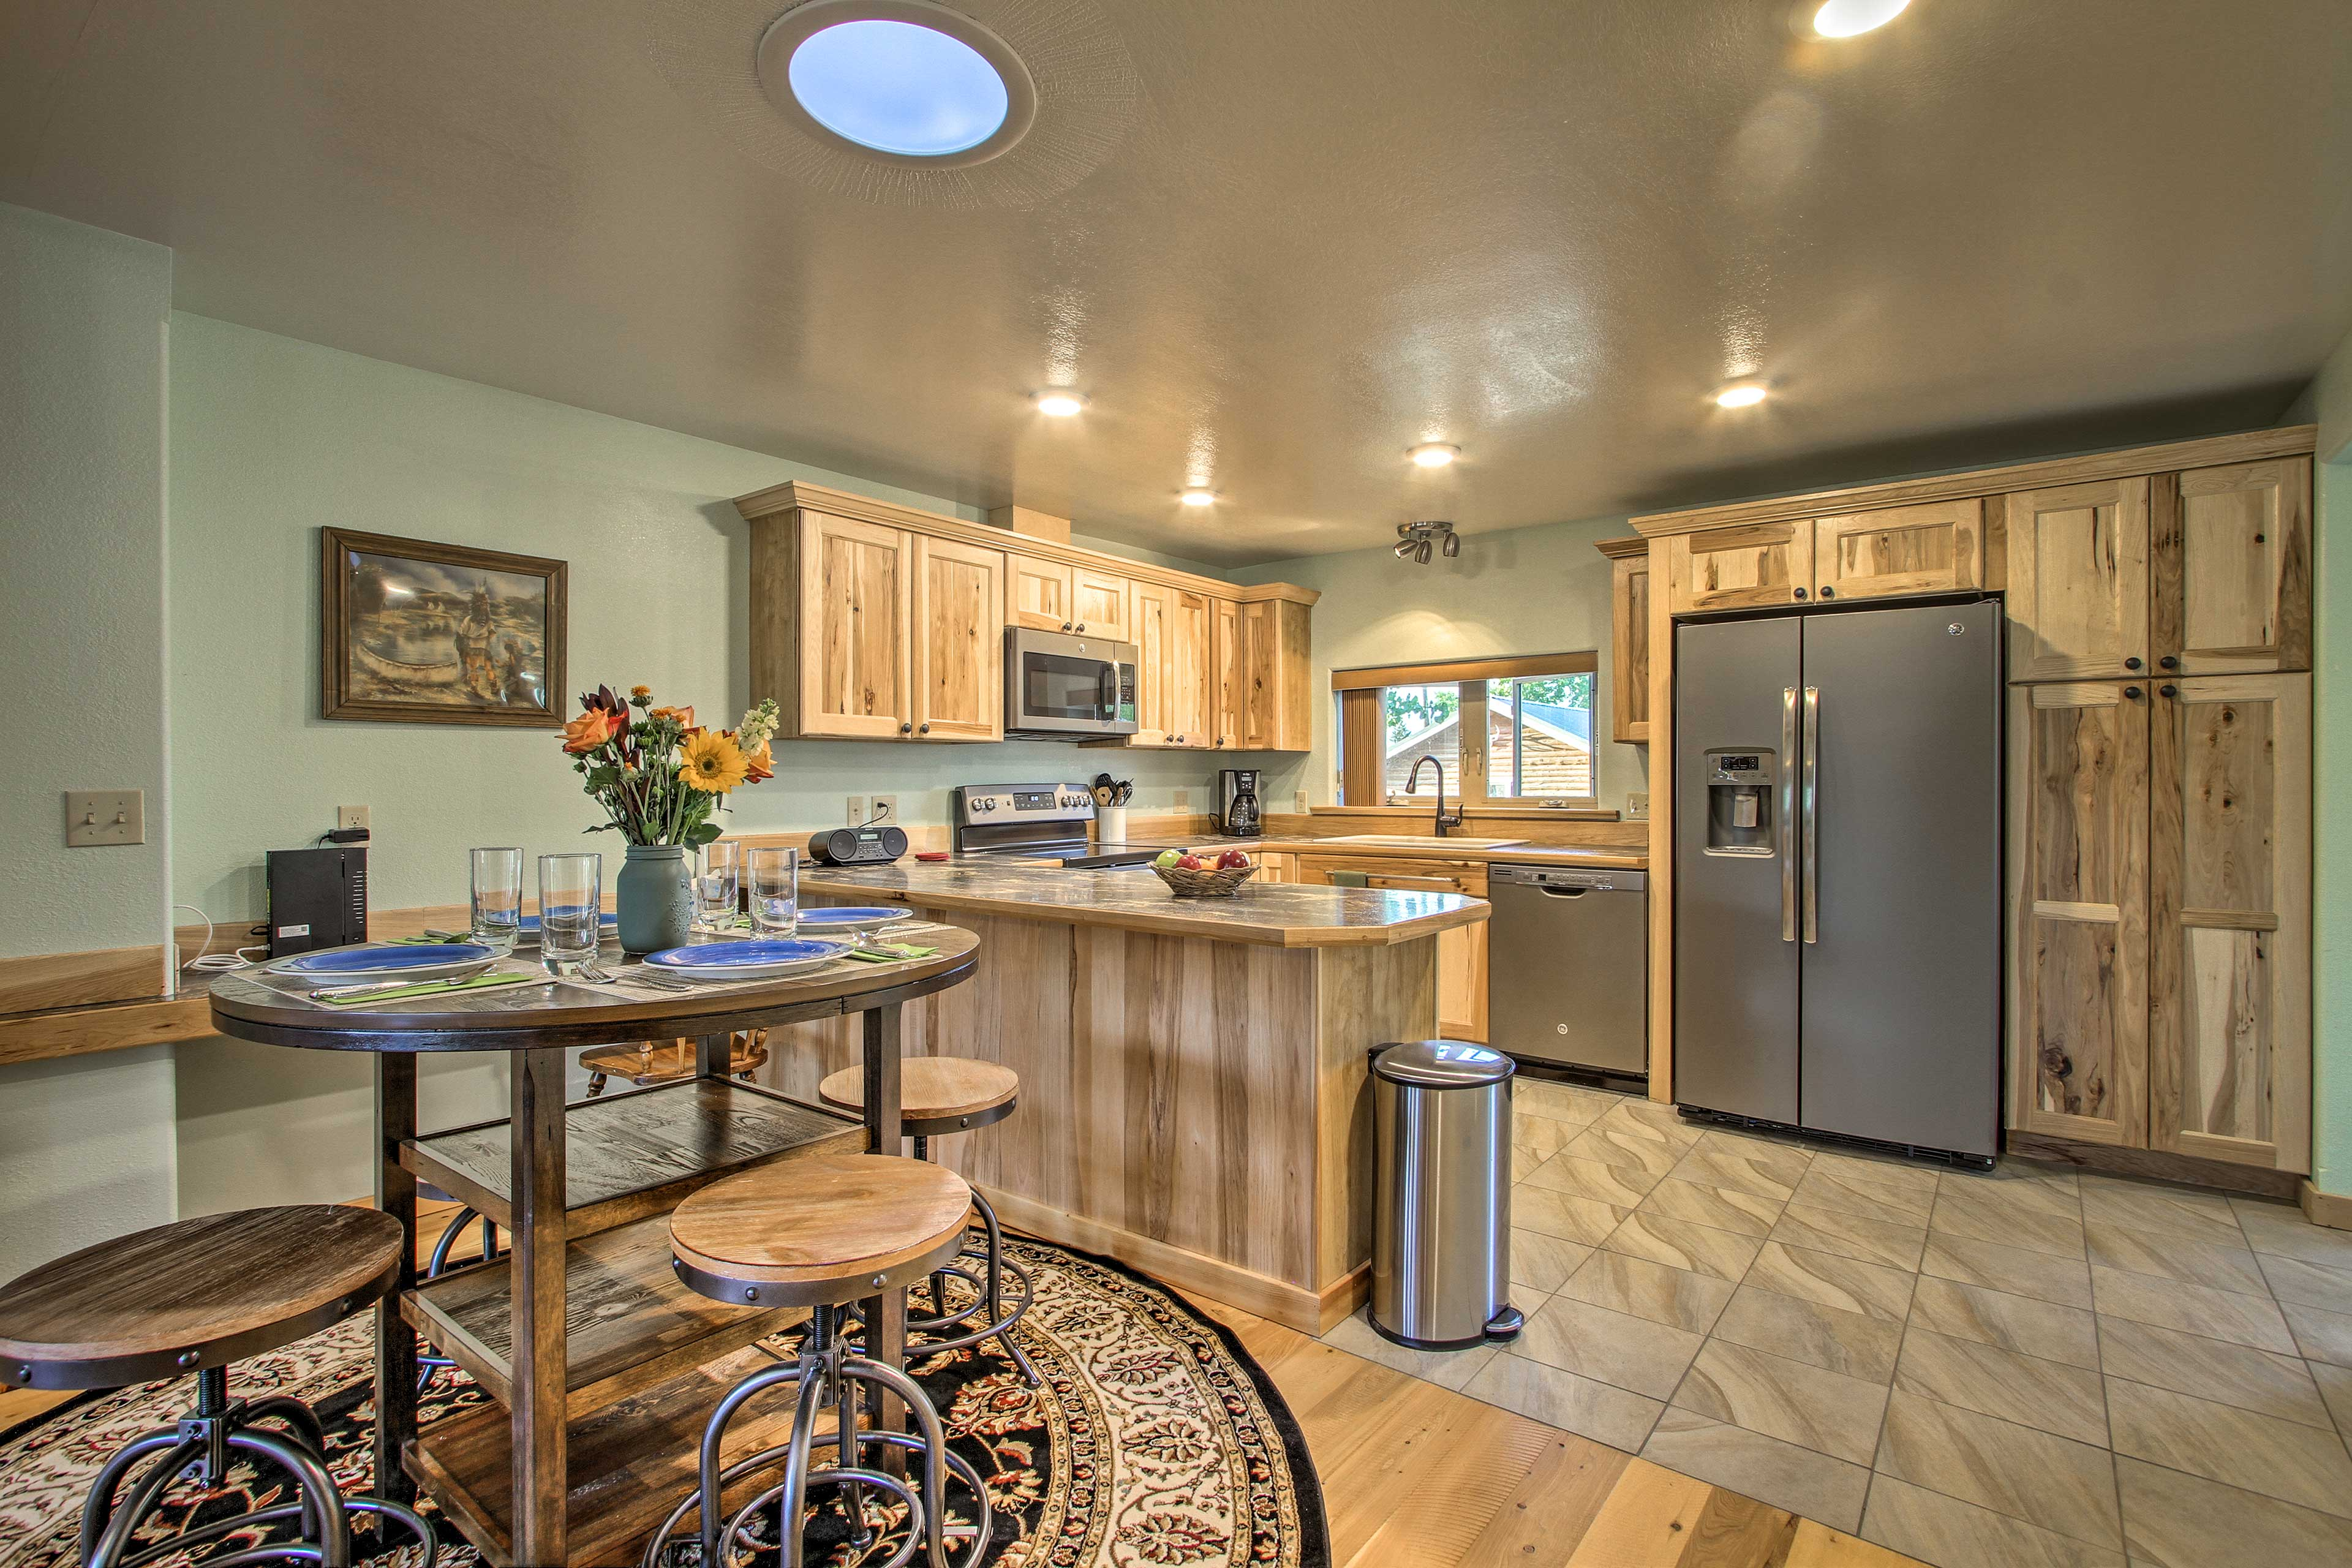 The cabin has been completely updated with modern appliances.